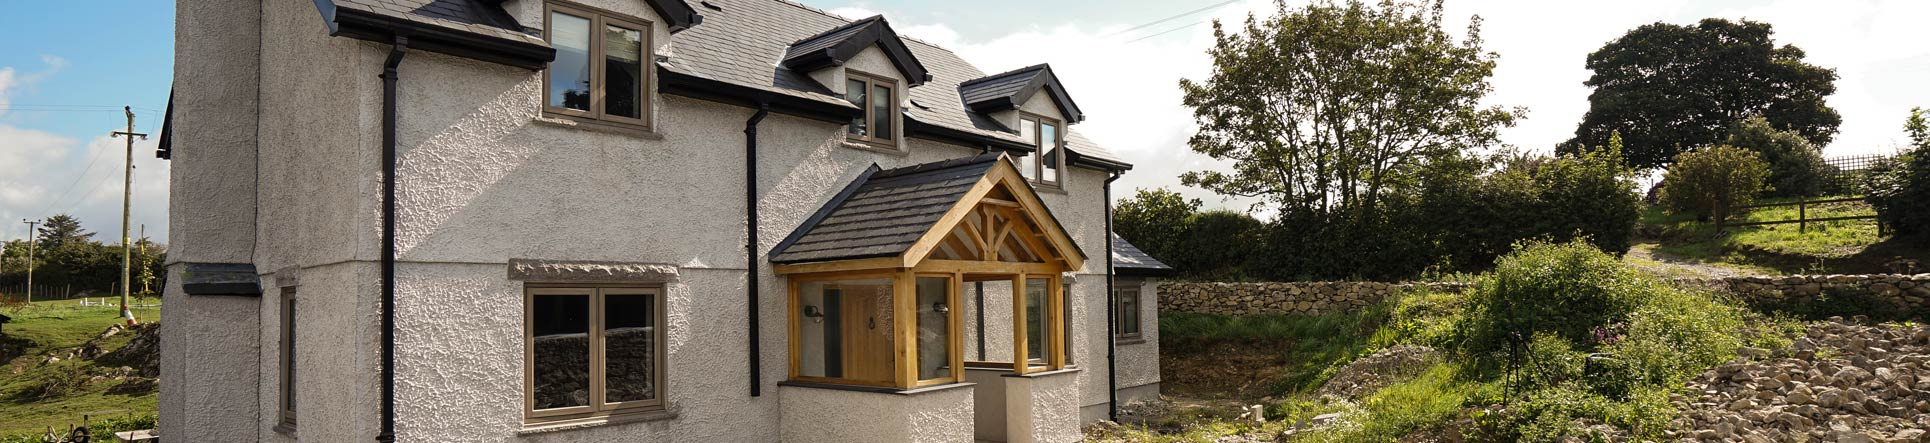 Residence 9 window installation, Anglesey